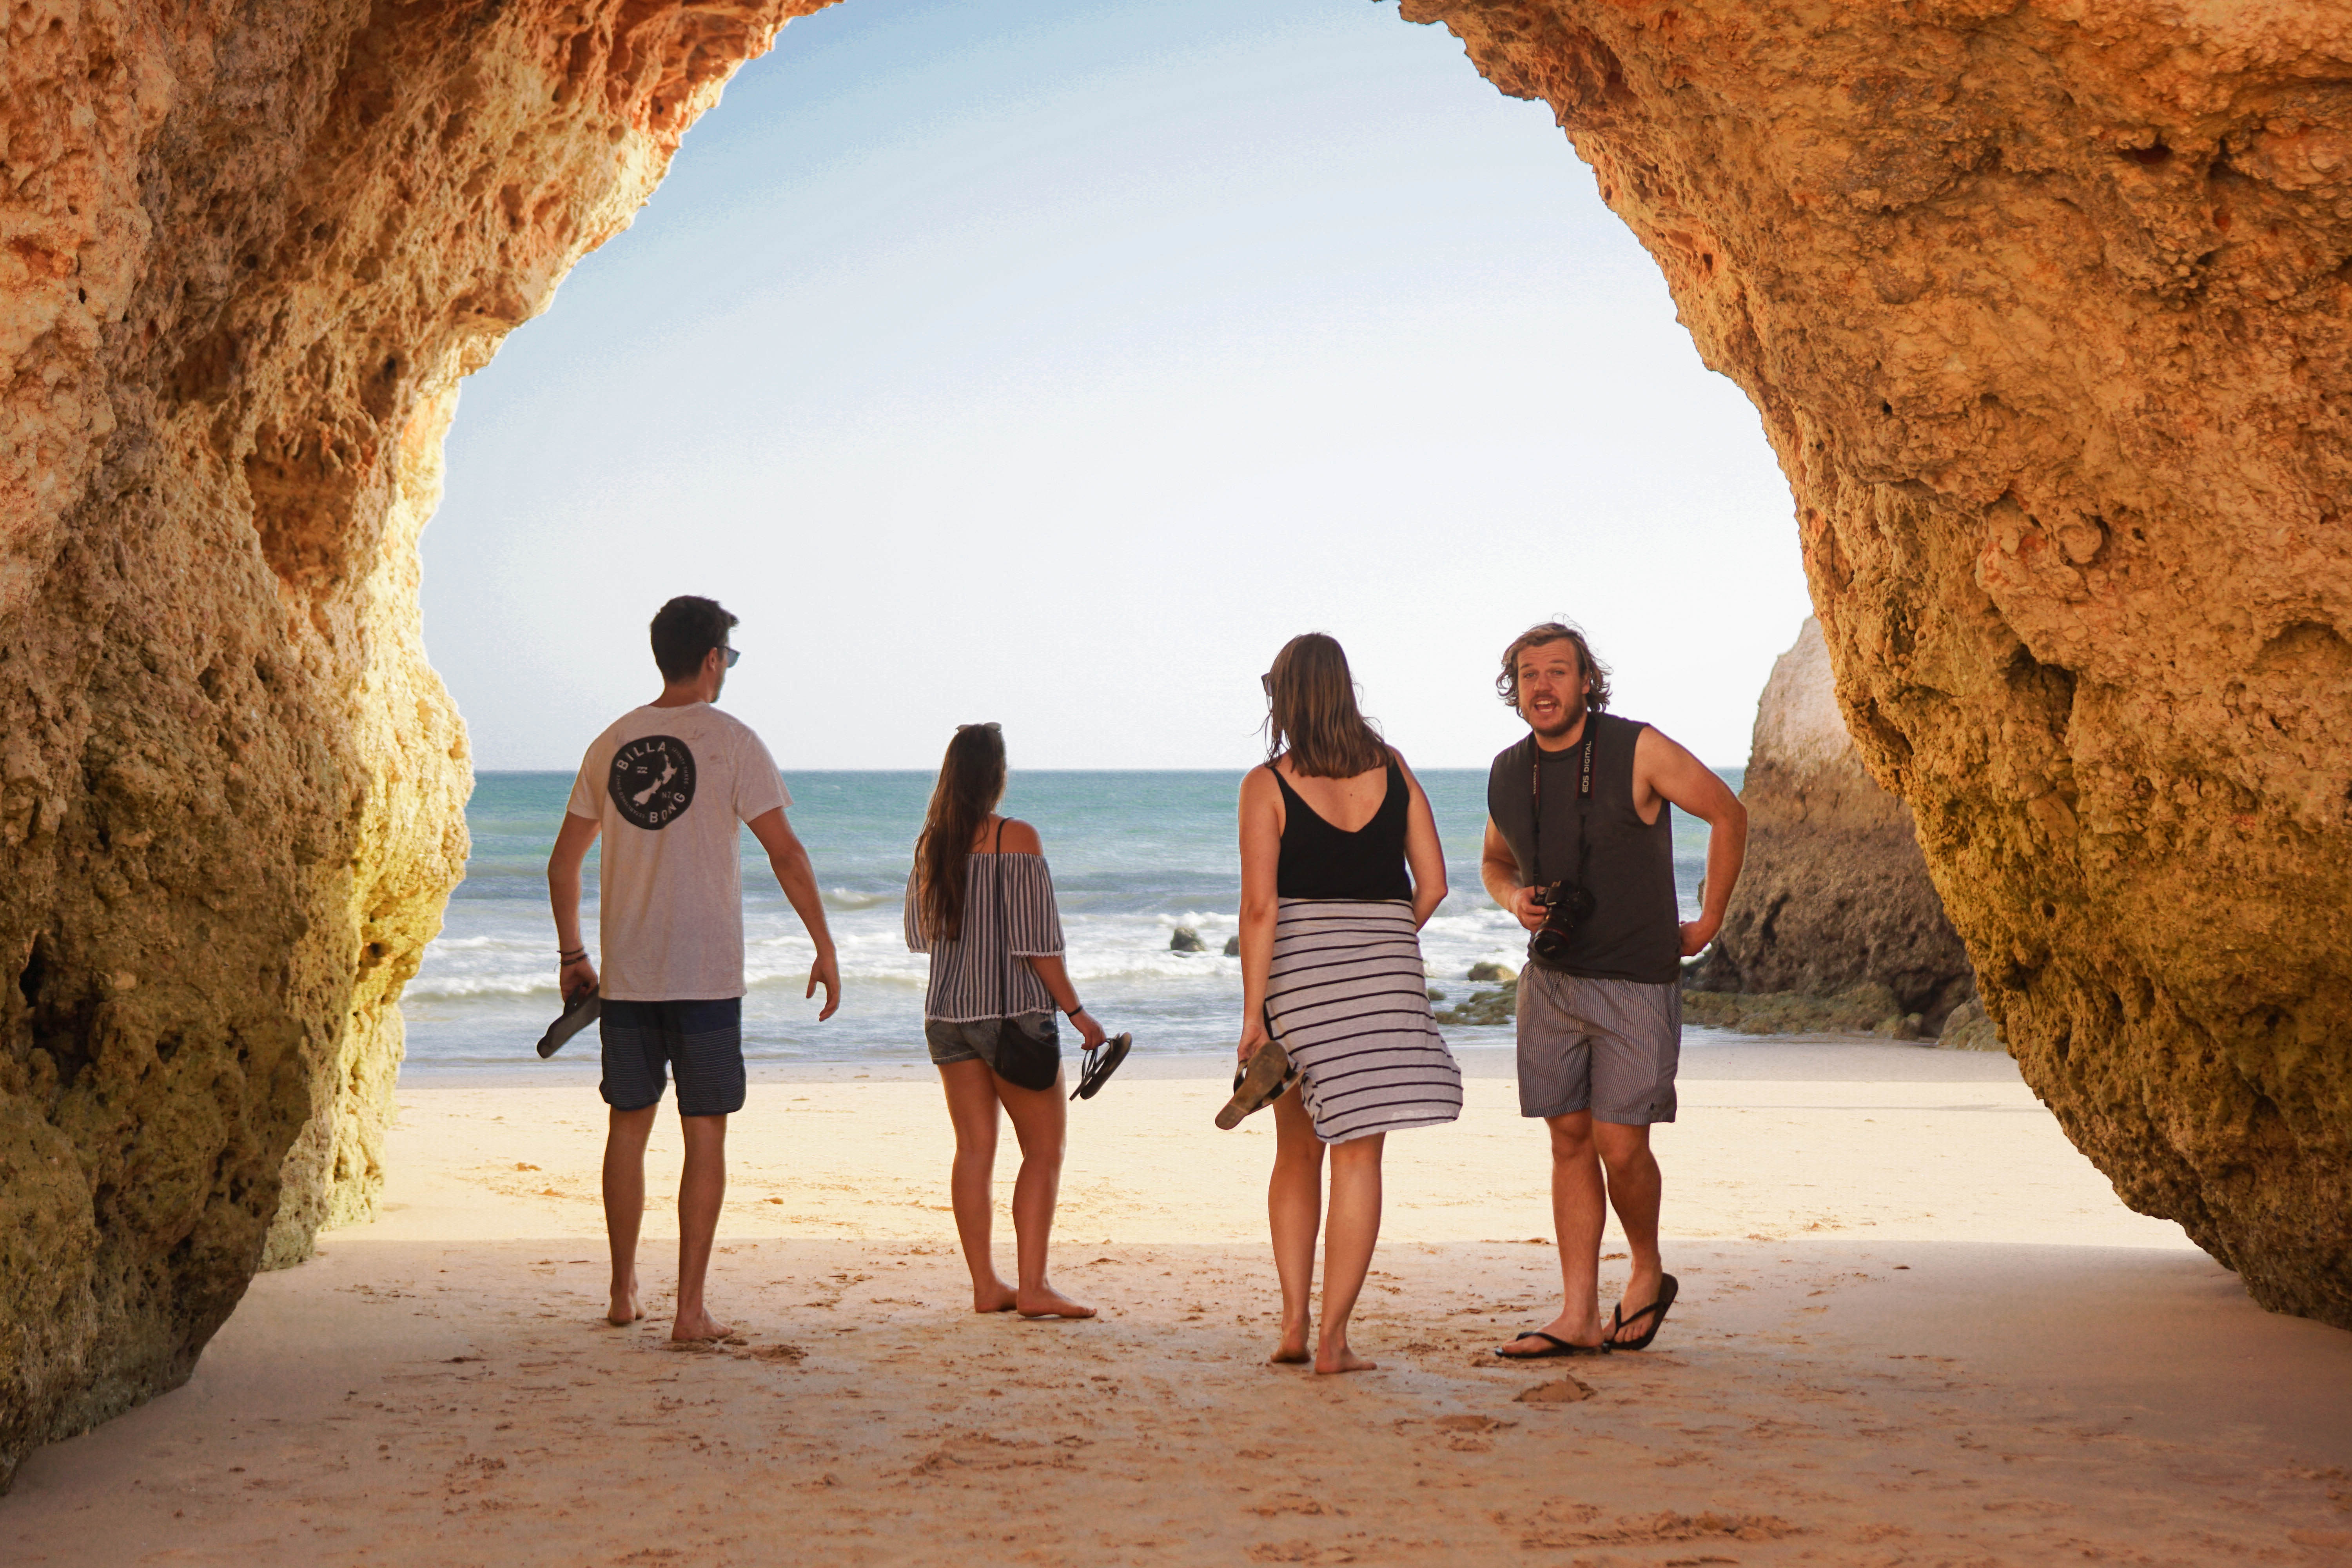 Portugal Road Trip Itineray : Alvor, Algarve Coast, Portugal